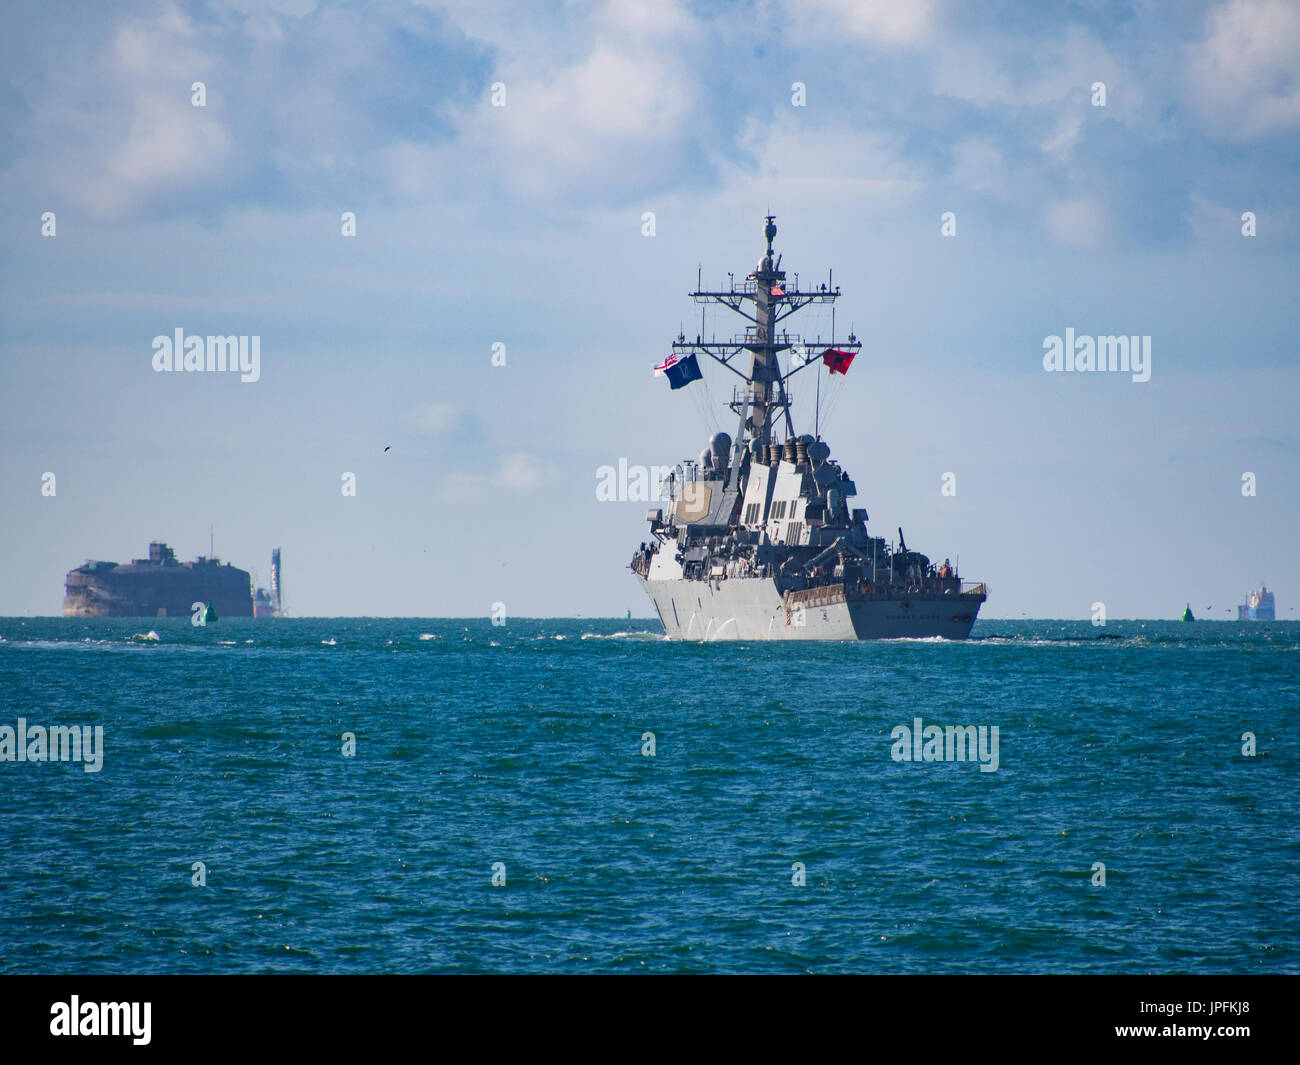 Portsmouth, Hampshire, UK. 01st Aug, 2017. The USS Donald Cook, DDG-75, an Arleigh Burke-class guided missile destroyer, Stock Photo